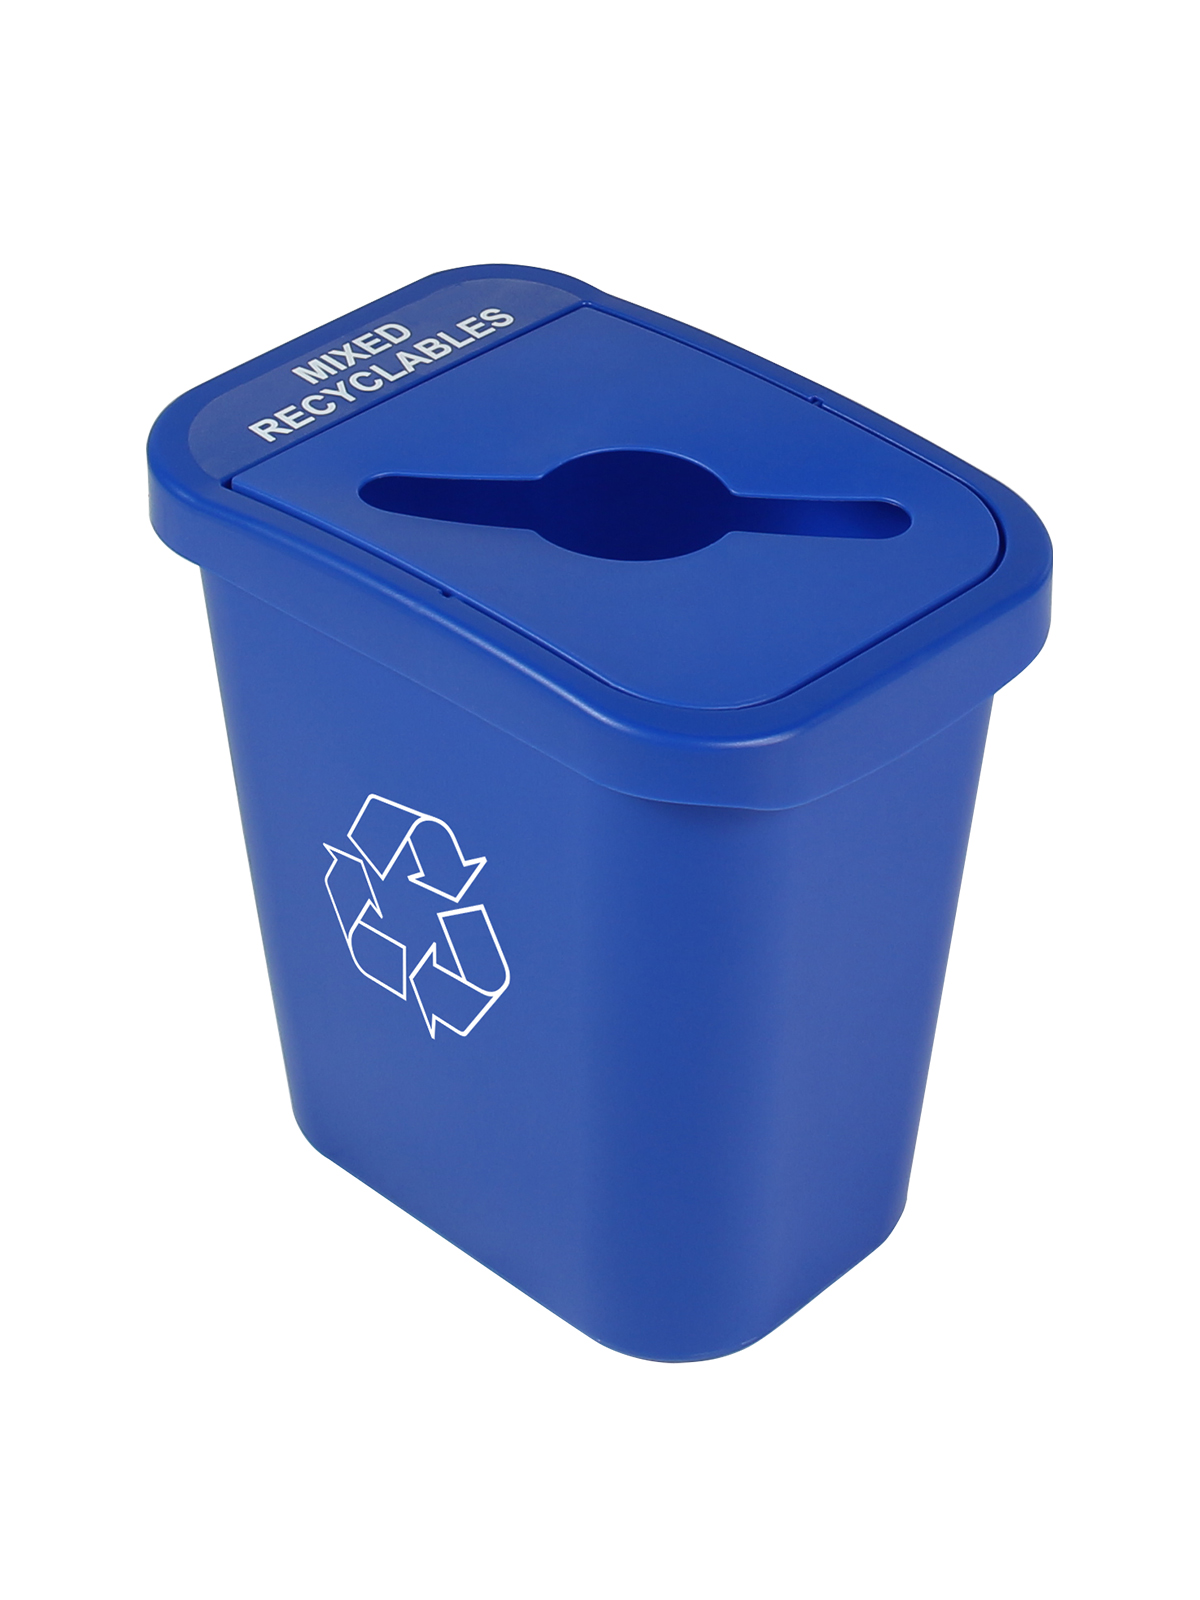 BILLI BOX - SINGLE 7 G - MIXED - BLUE - MIXED RECYCLABLES